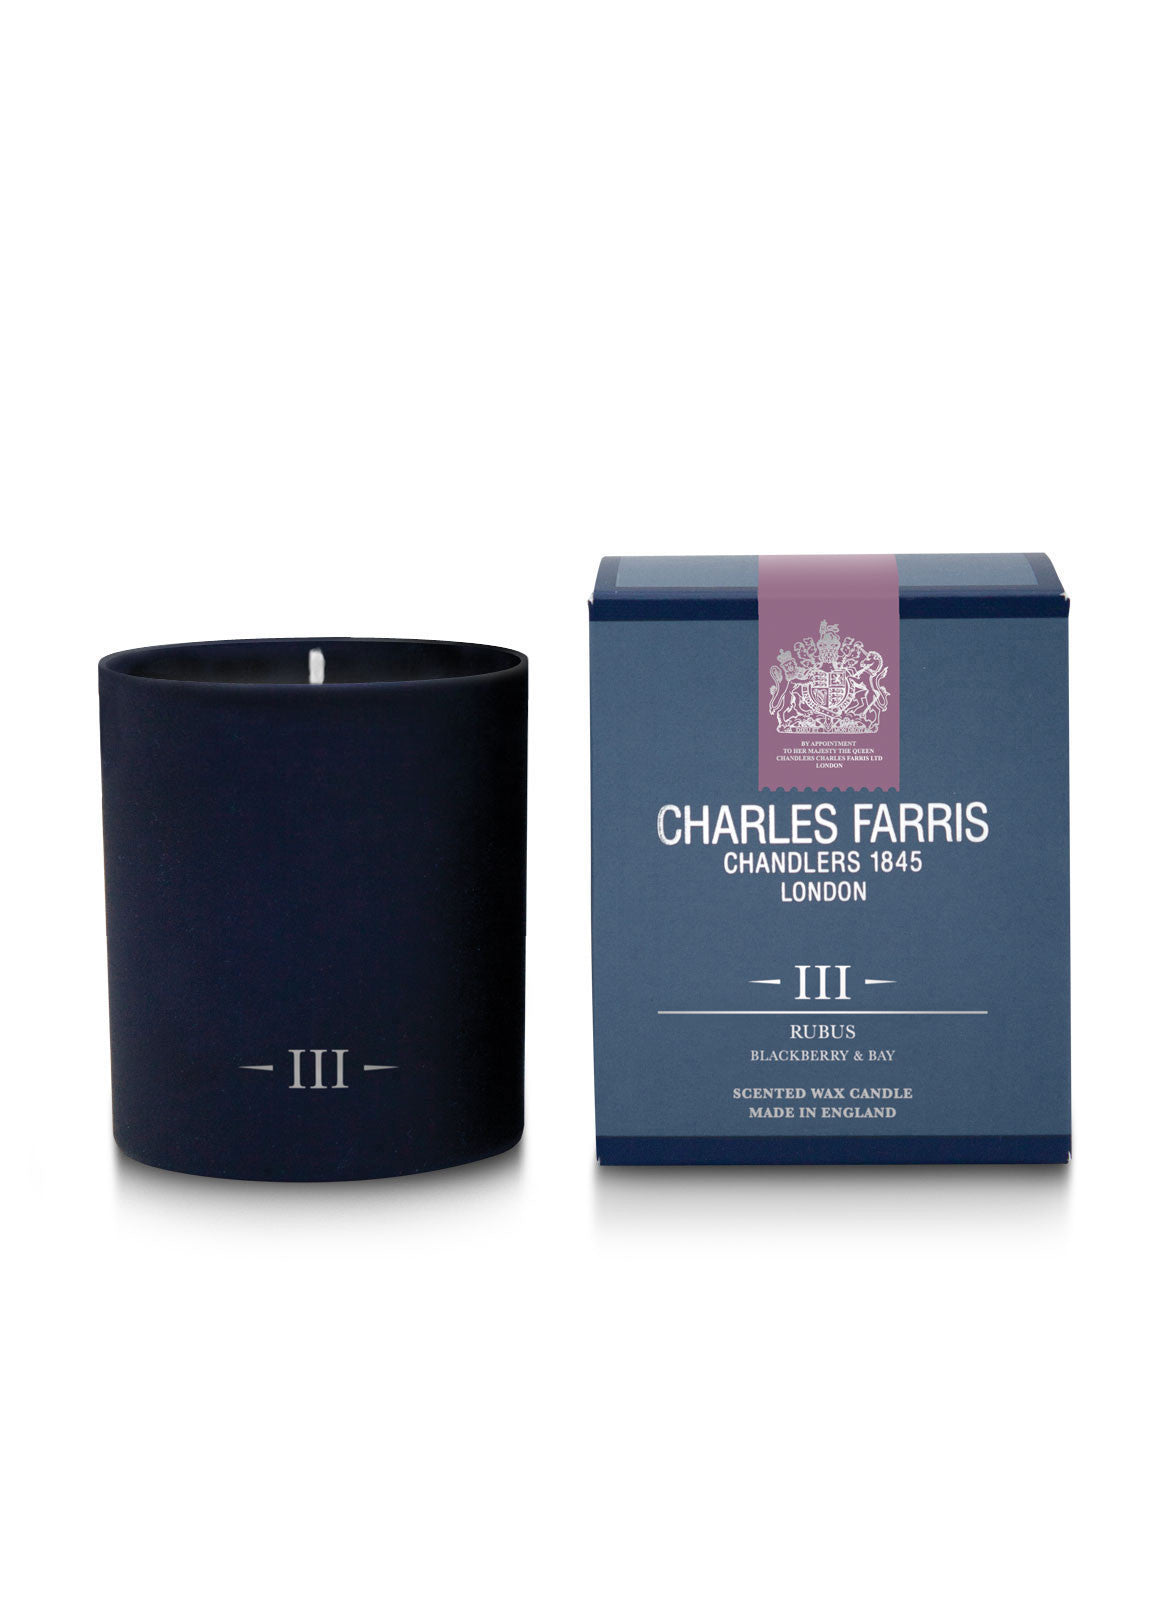 Rubus Scented Candle | Blackberry & Bay